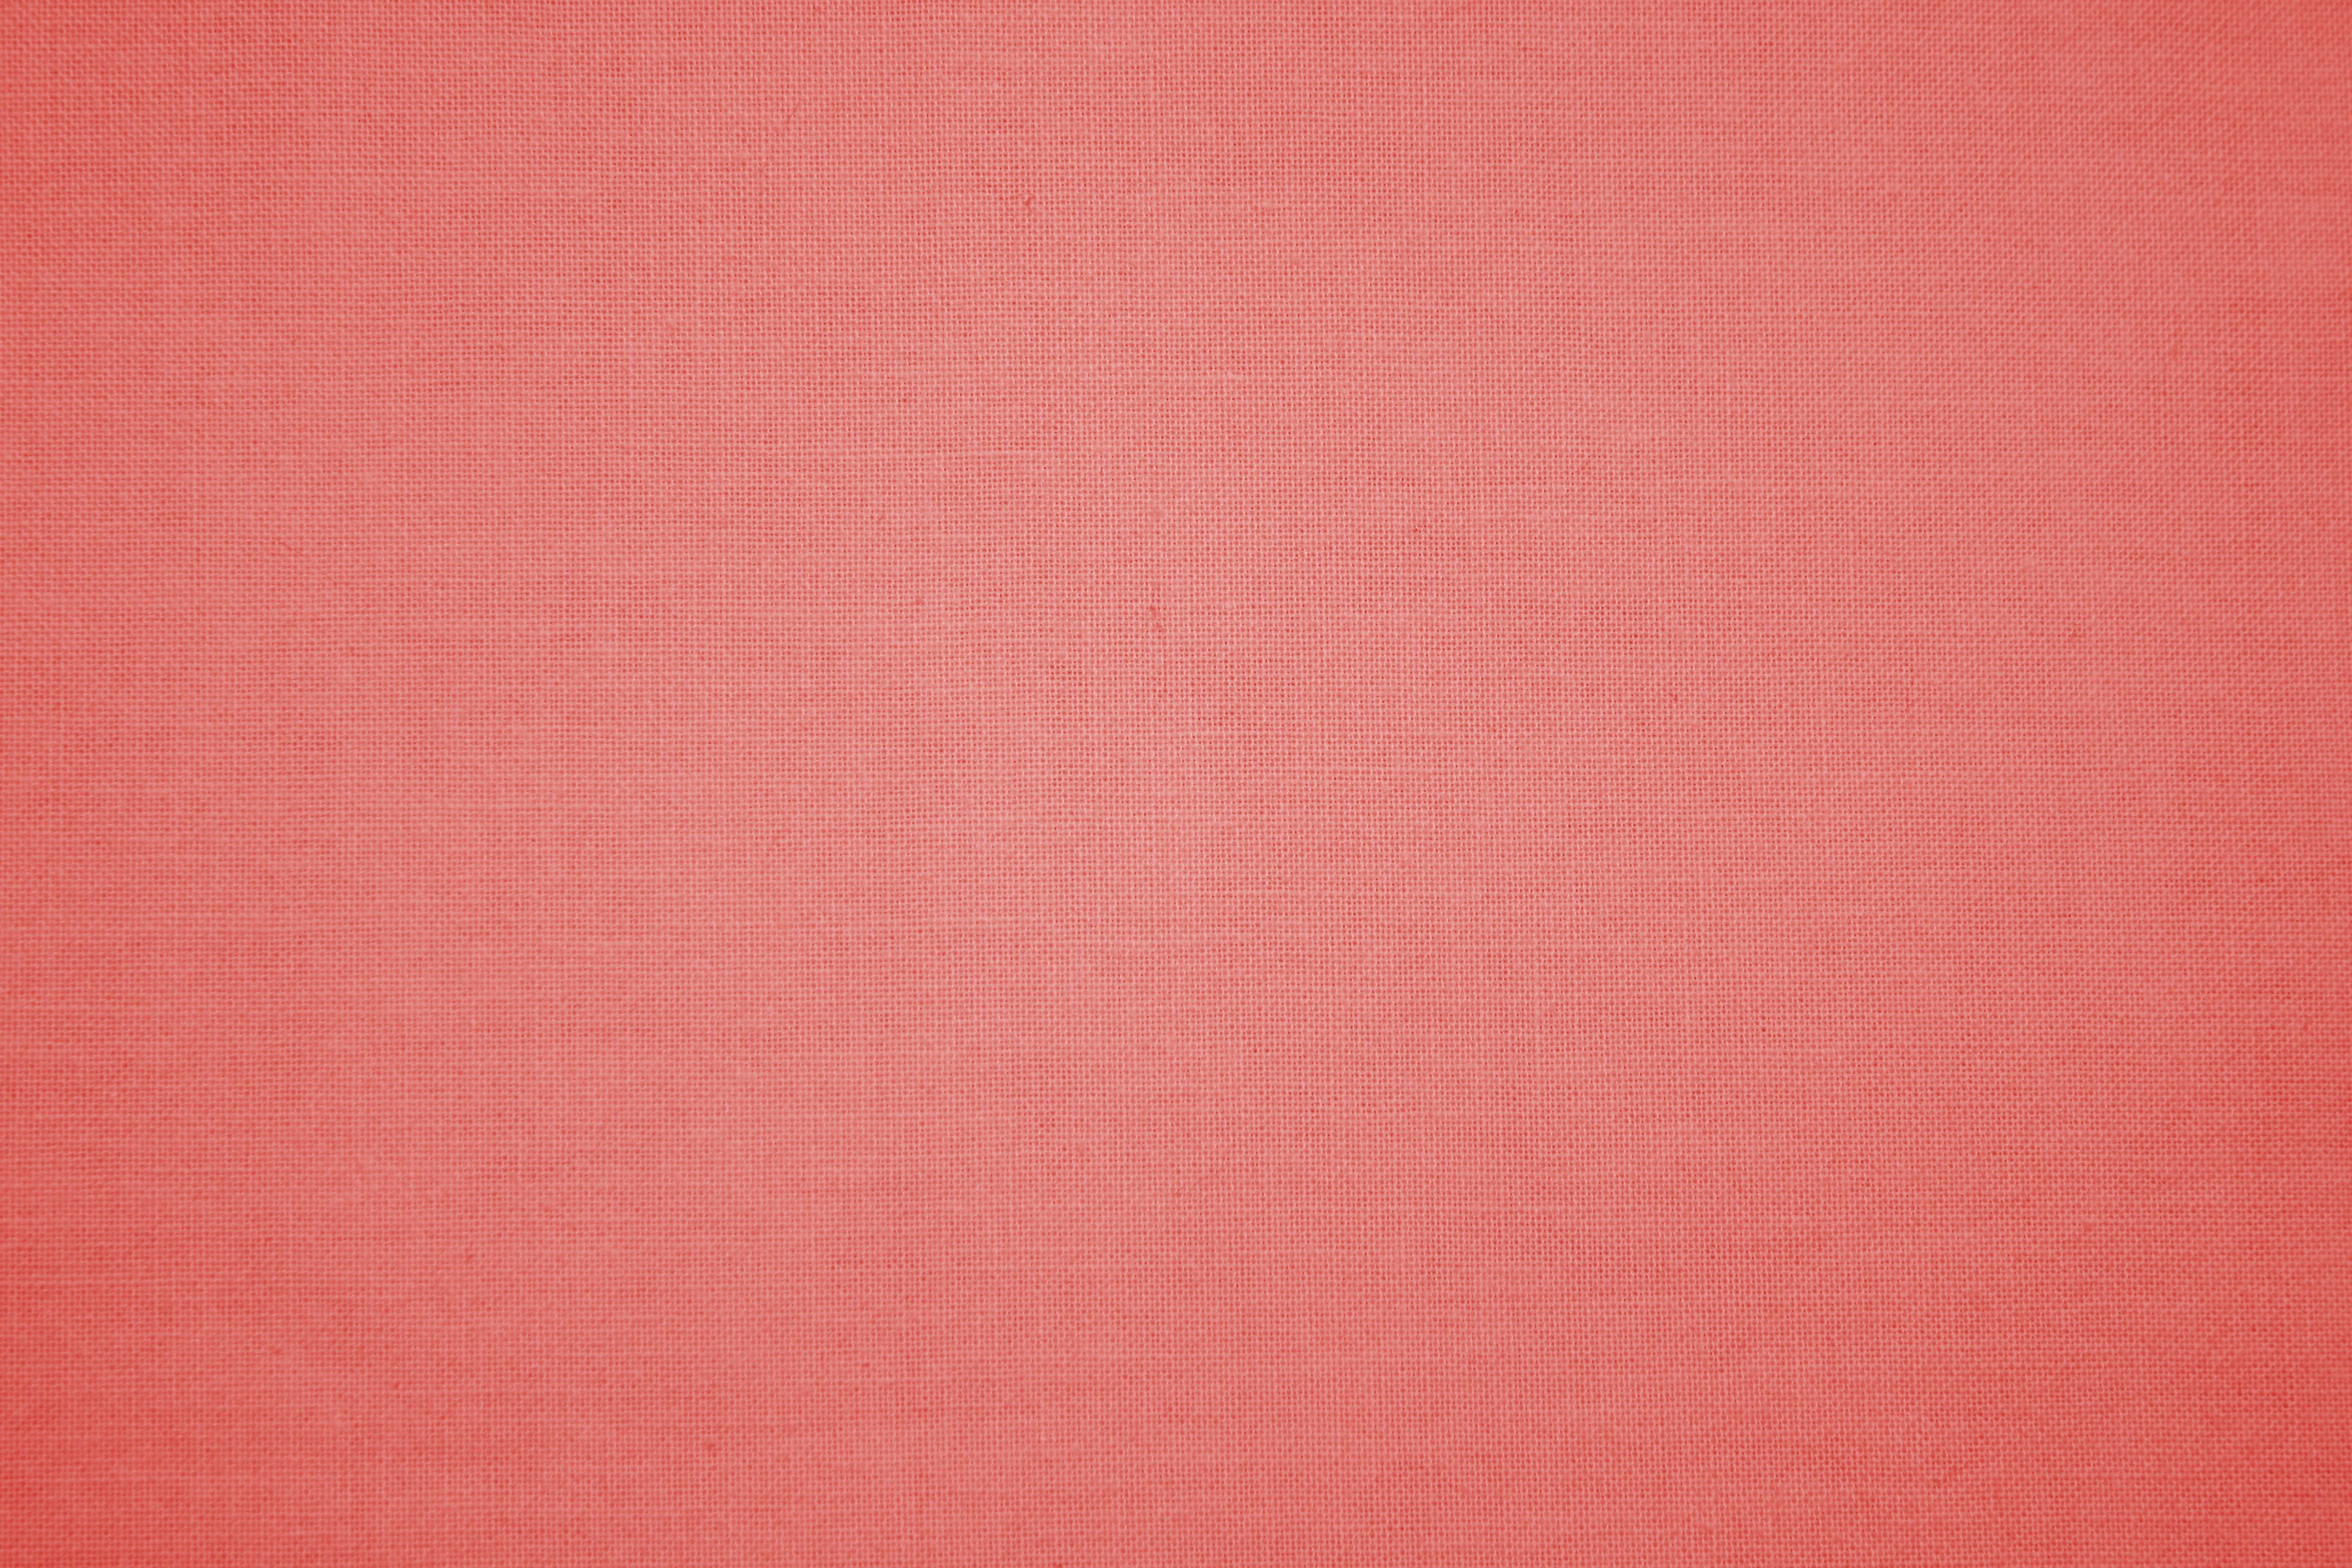 Light Red Canvas Fabric Texture Picture Free Photograph